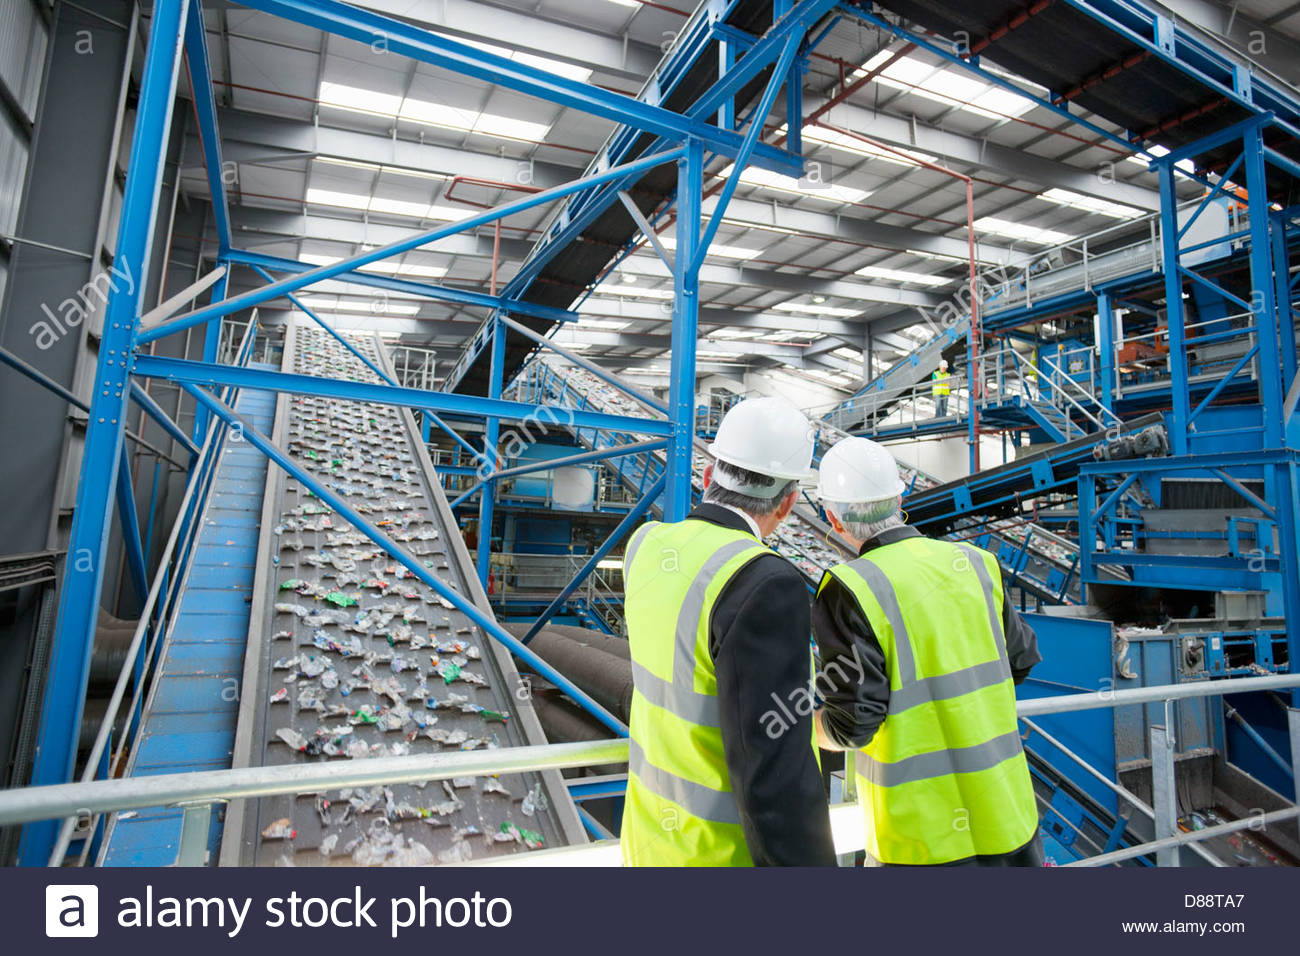 Businessmen watching plastic on conveyor belt in recycling plant - Stock Image